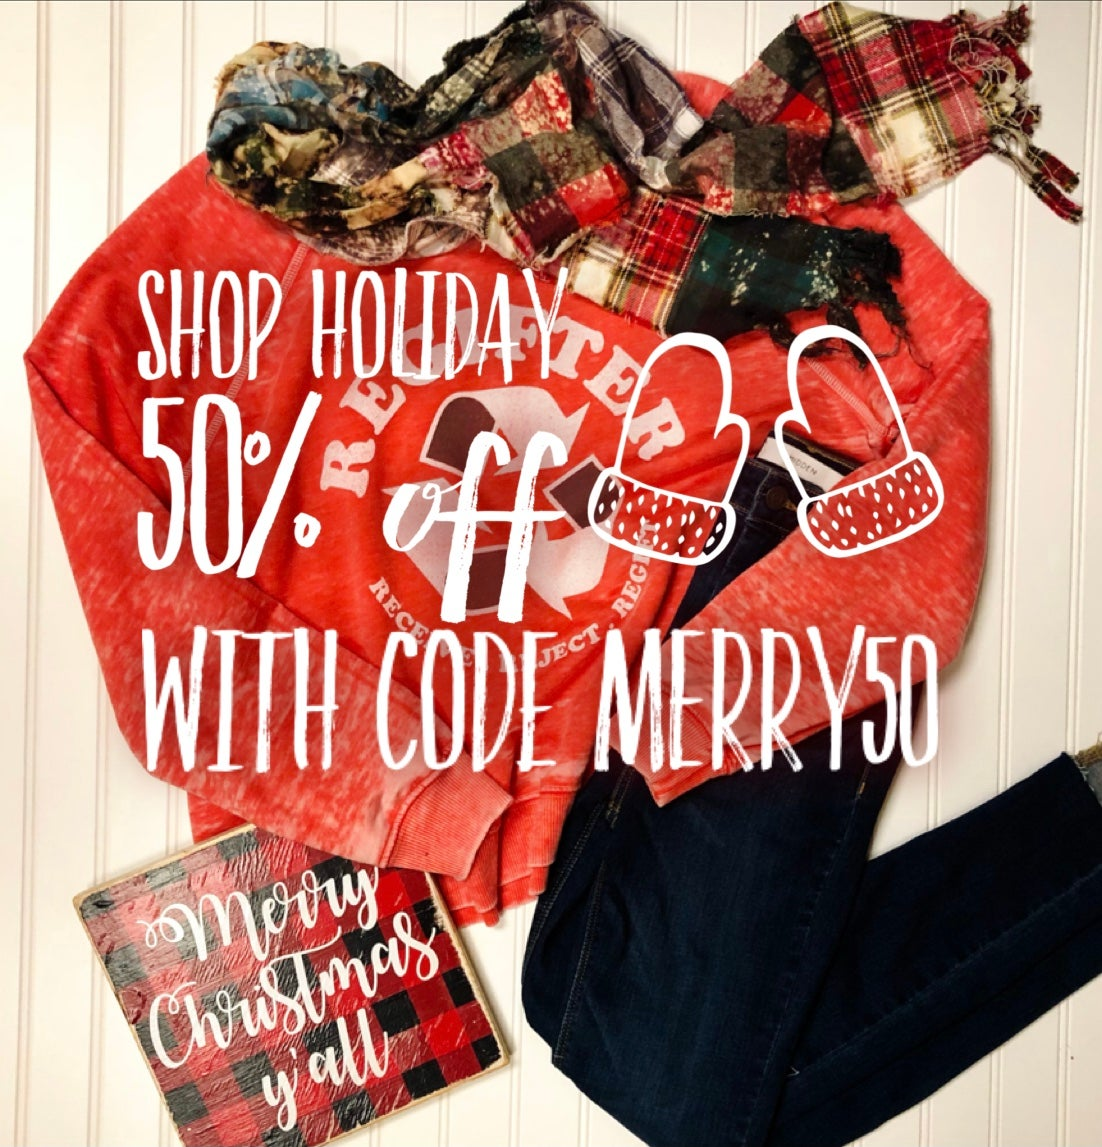 Shop holiday 50% off with code MERRY50